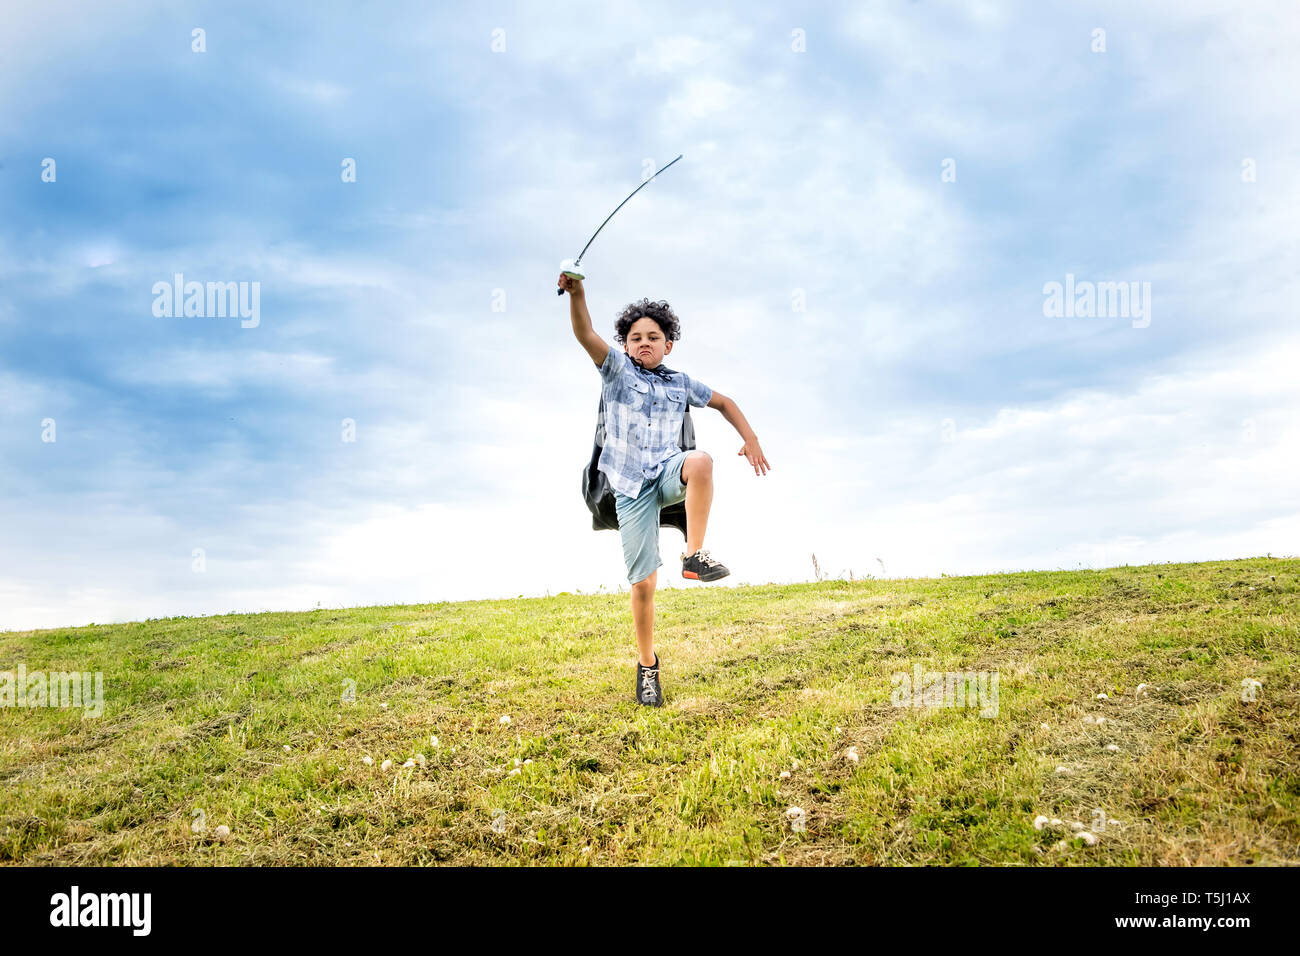 Young boy having fun playing soldiers brandishing a toy sword above his head as he runs across a green grassy hill - Stock Image